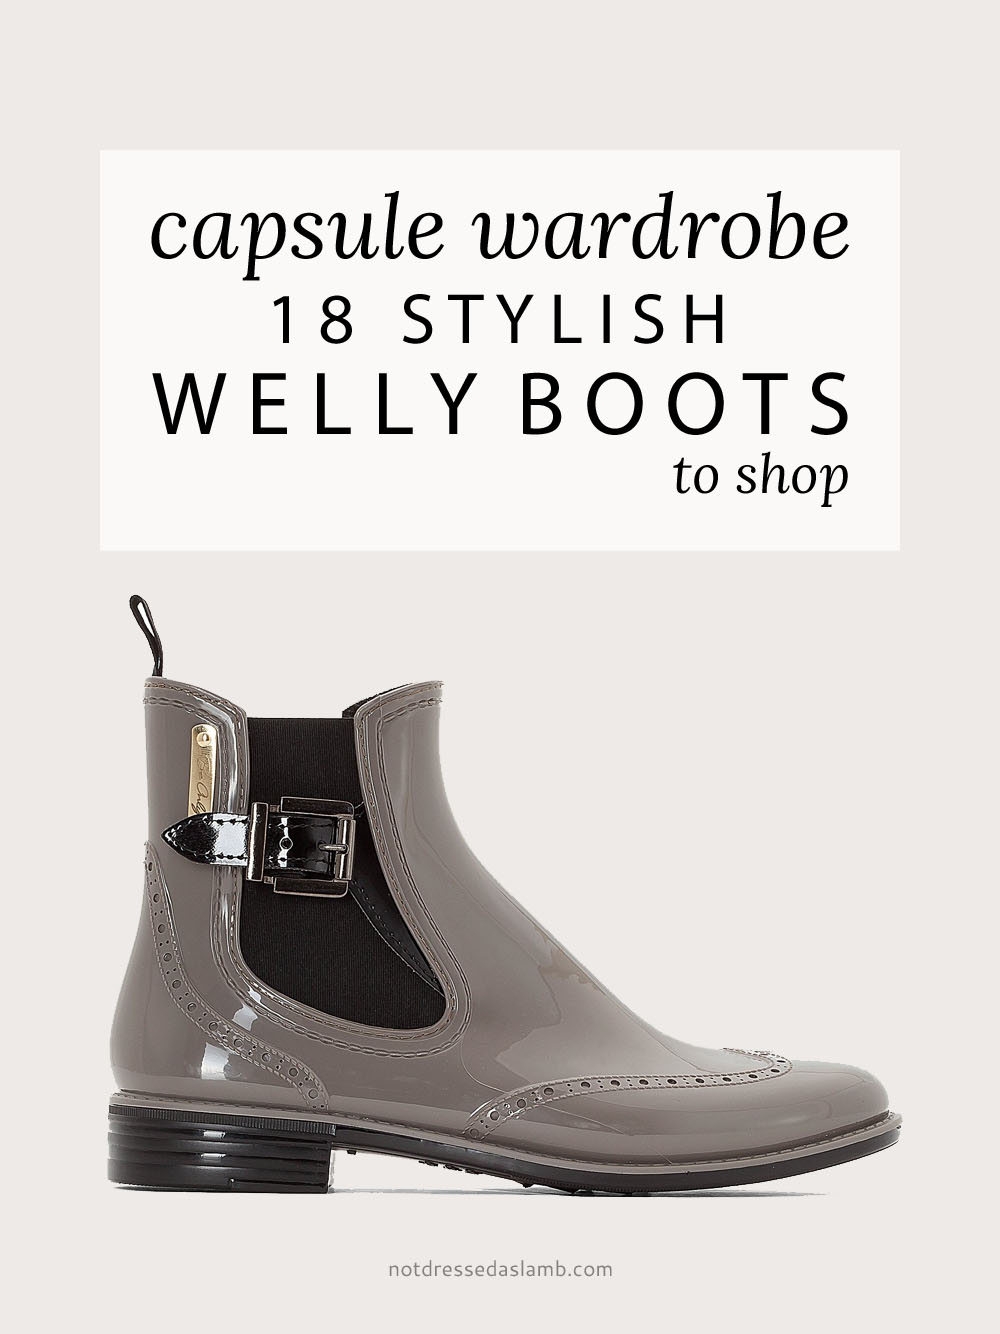 Capsule wardrobe: 18 stylish Wellington (welly) boots to shop | Not Dressed As Lamb